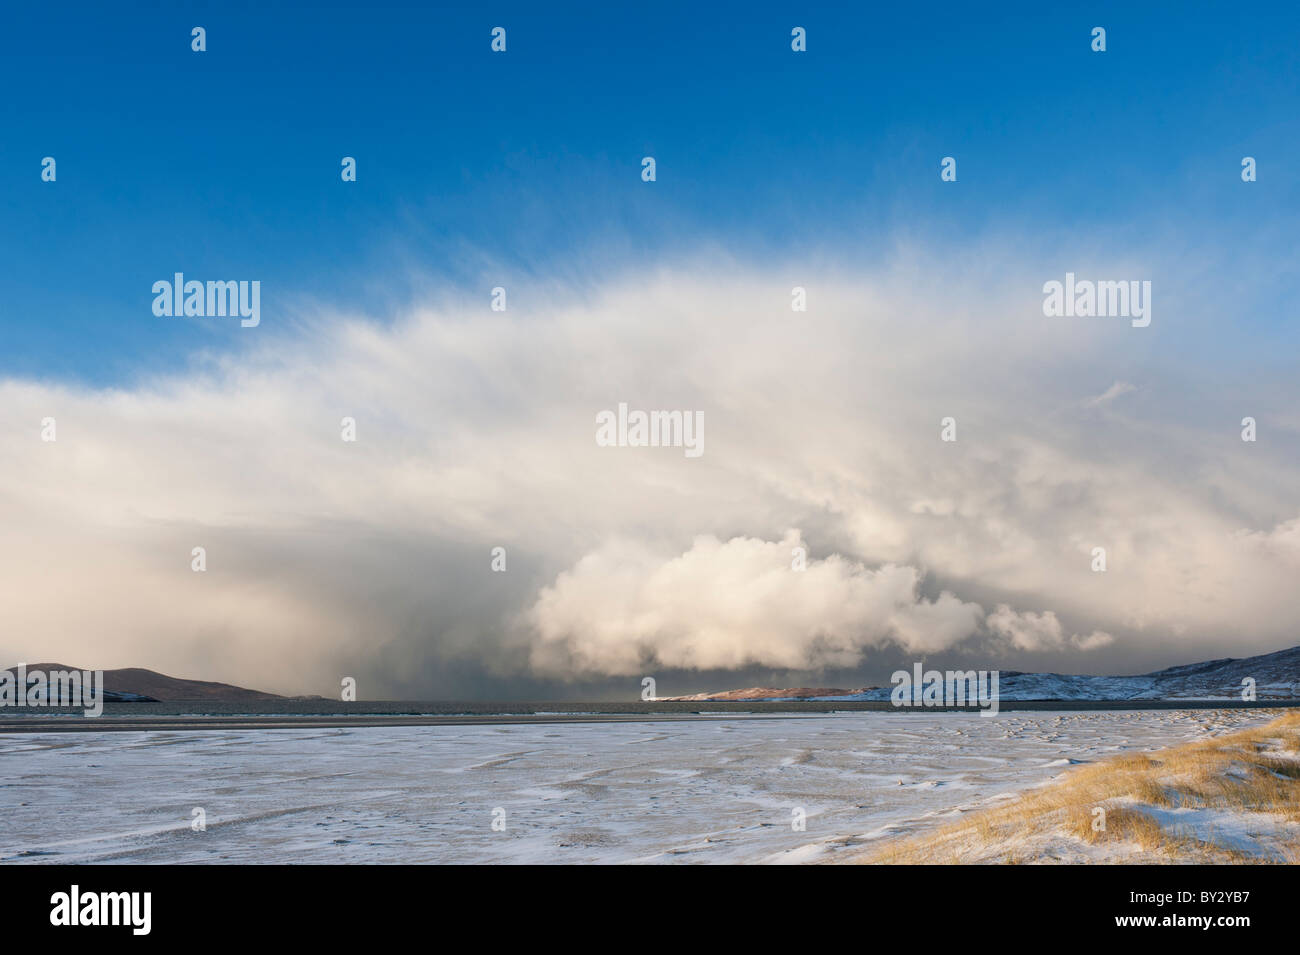 Dramatic clouds of approaching winter snow squall over Luskentyre beach, Isle of Harris, Outer Hebrides, Scotland Stock Photo